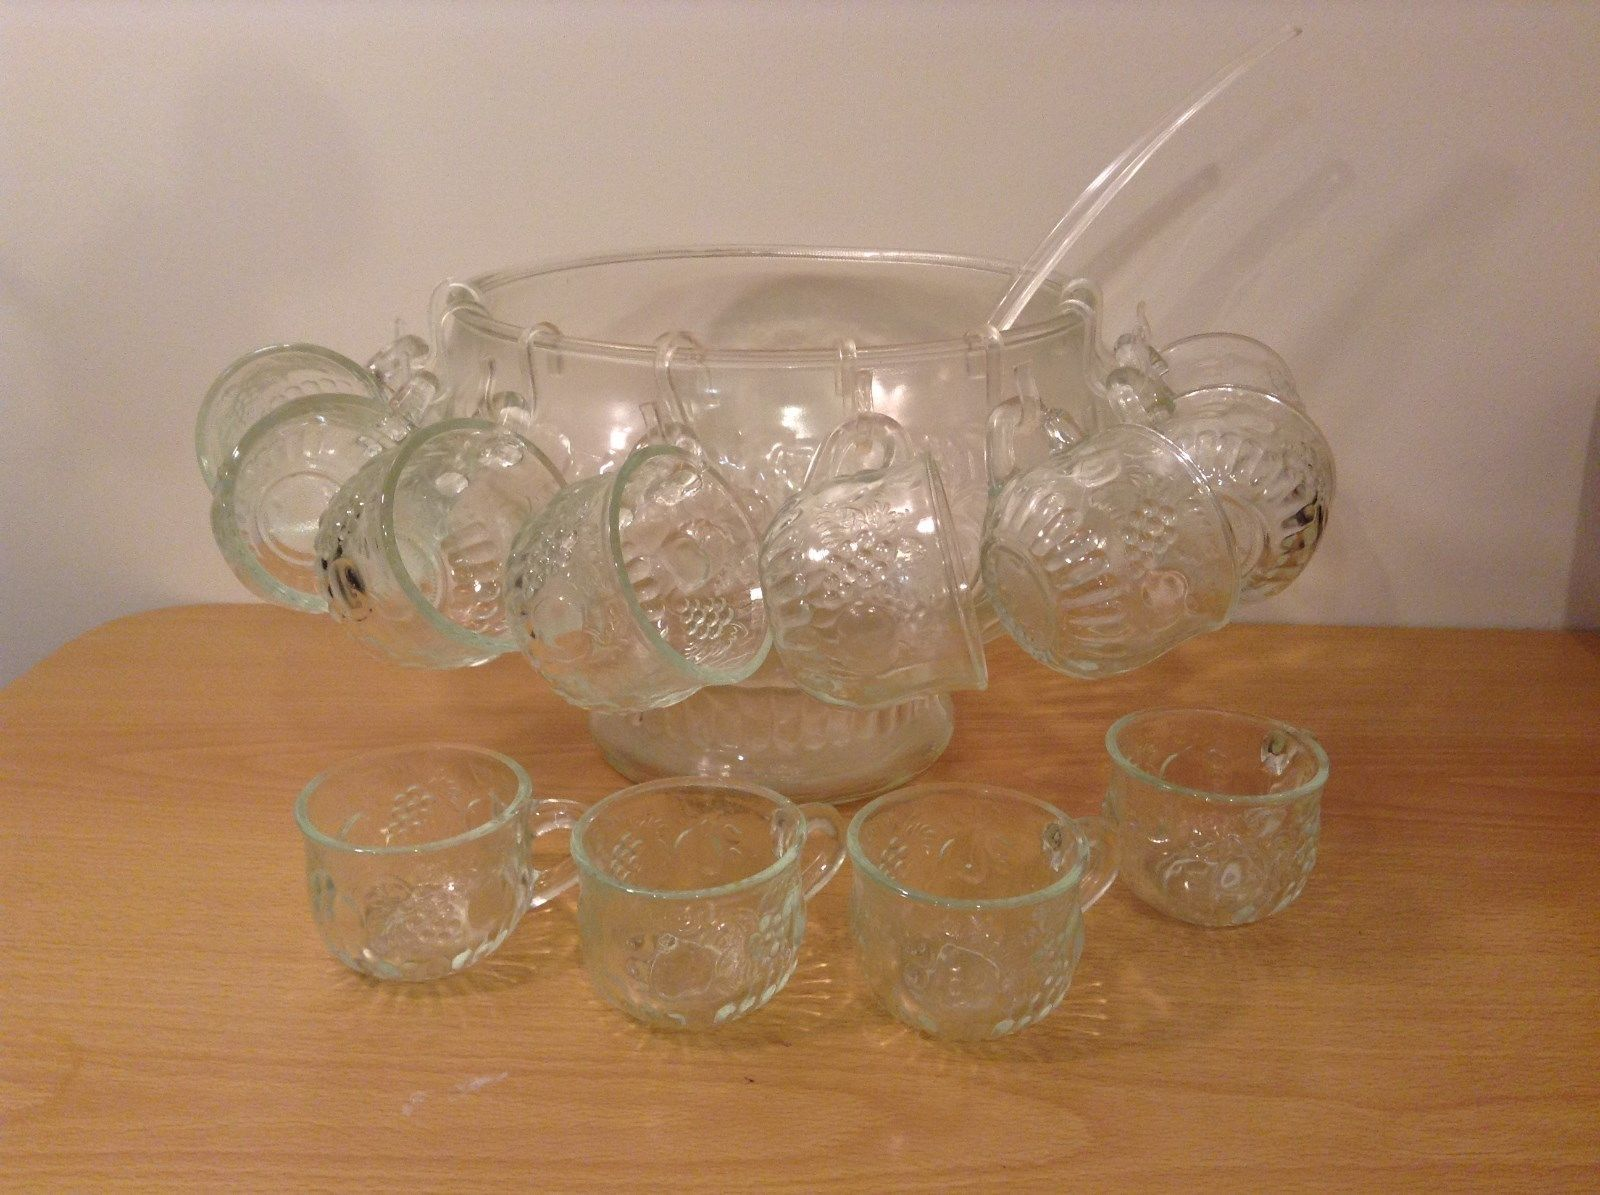 22 Piece Crystal Fruit Punch Bowl Set by Jeannette Glass Company PA Vintage